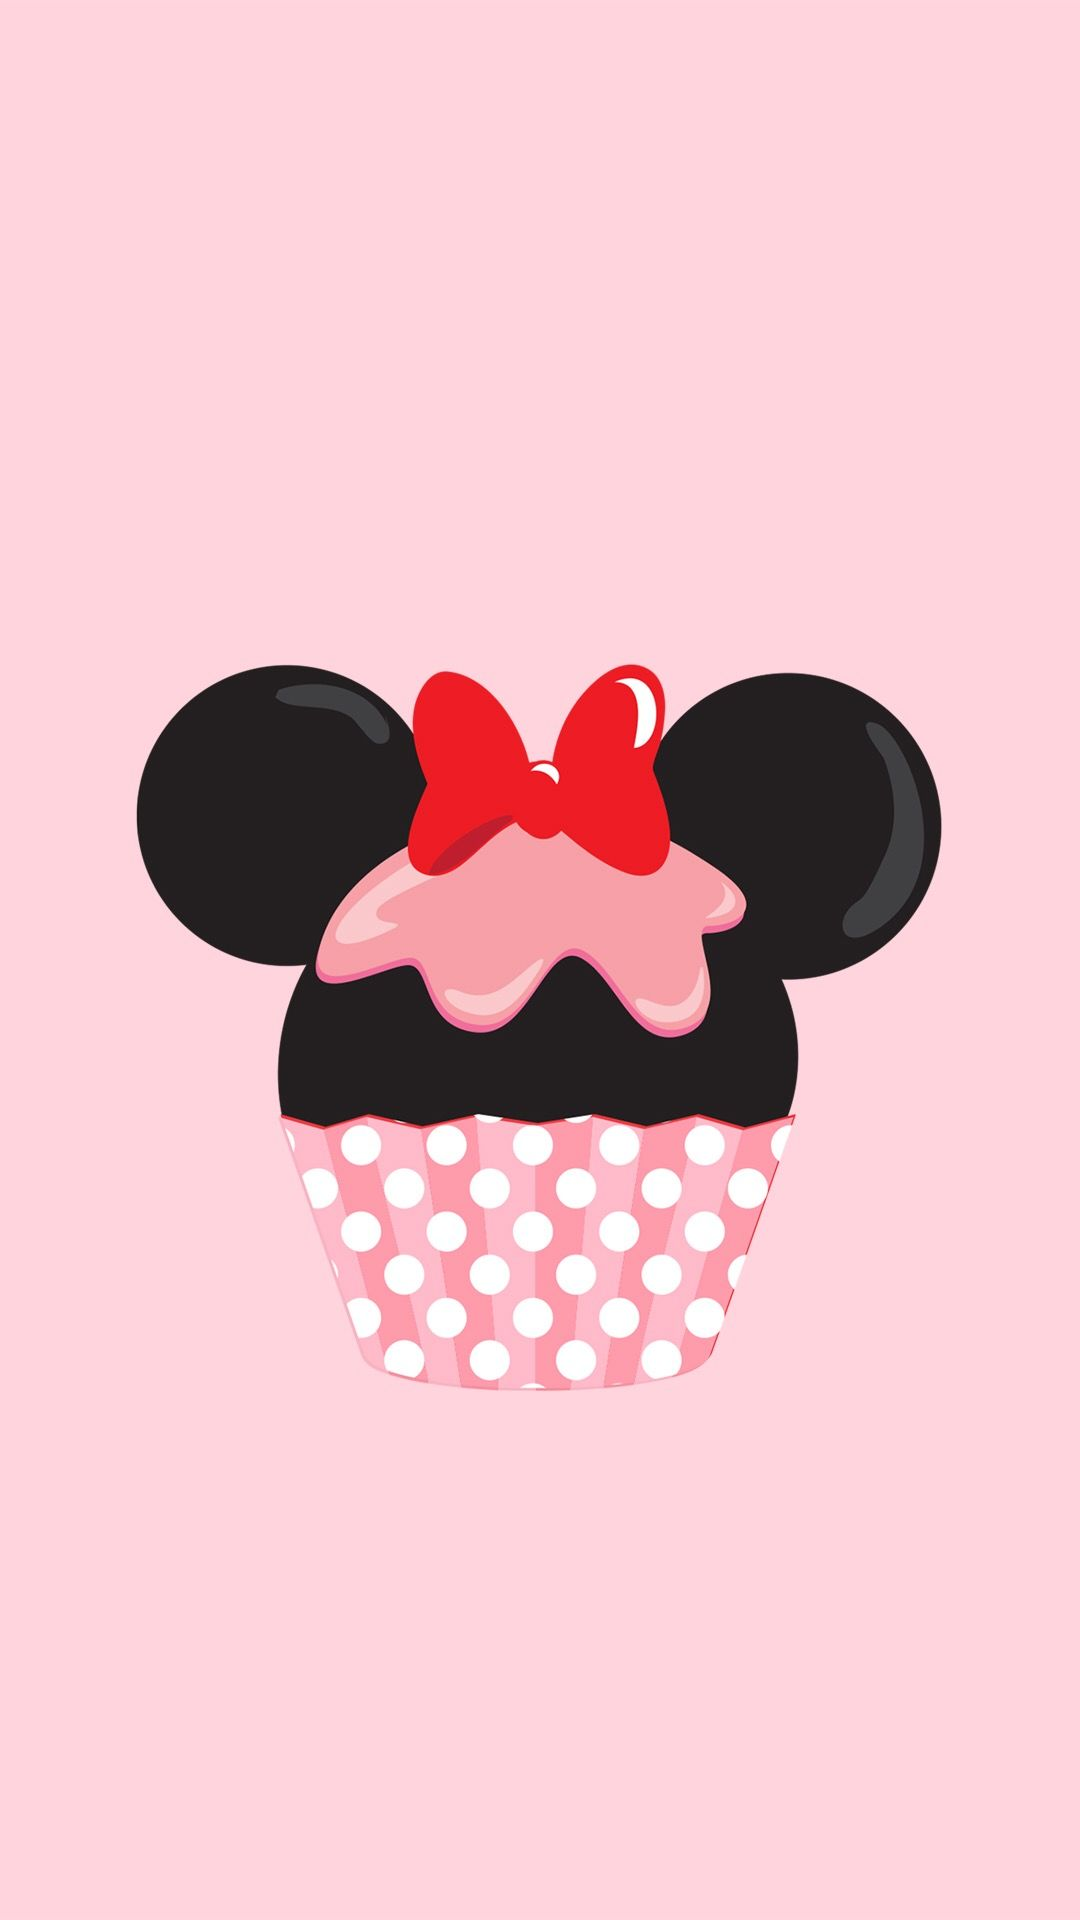 Wallpaper iphone minnie mouse - Free Backgrounds For Your Iphone